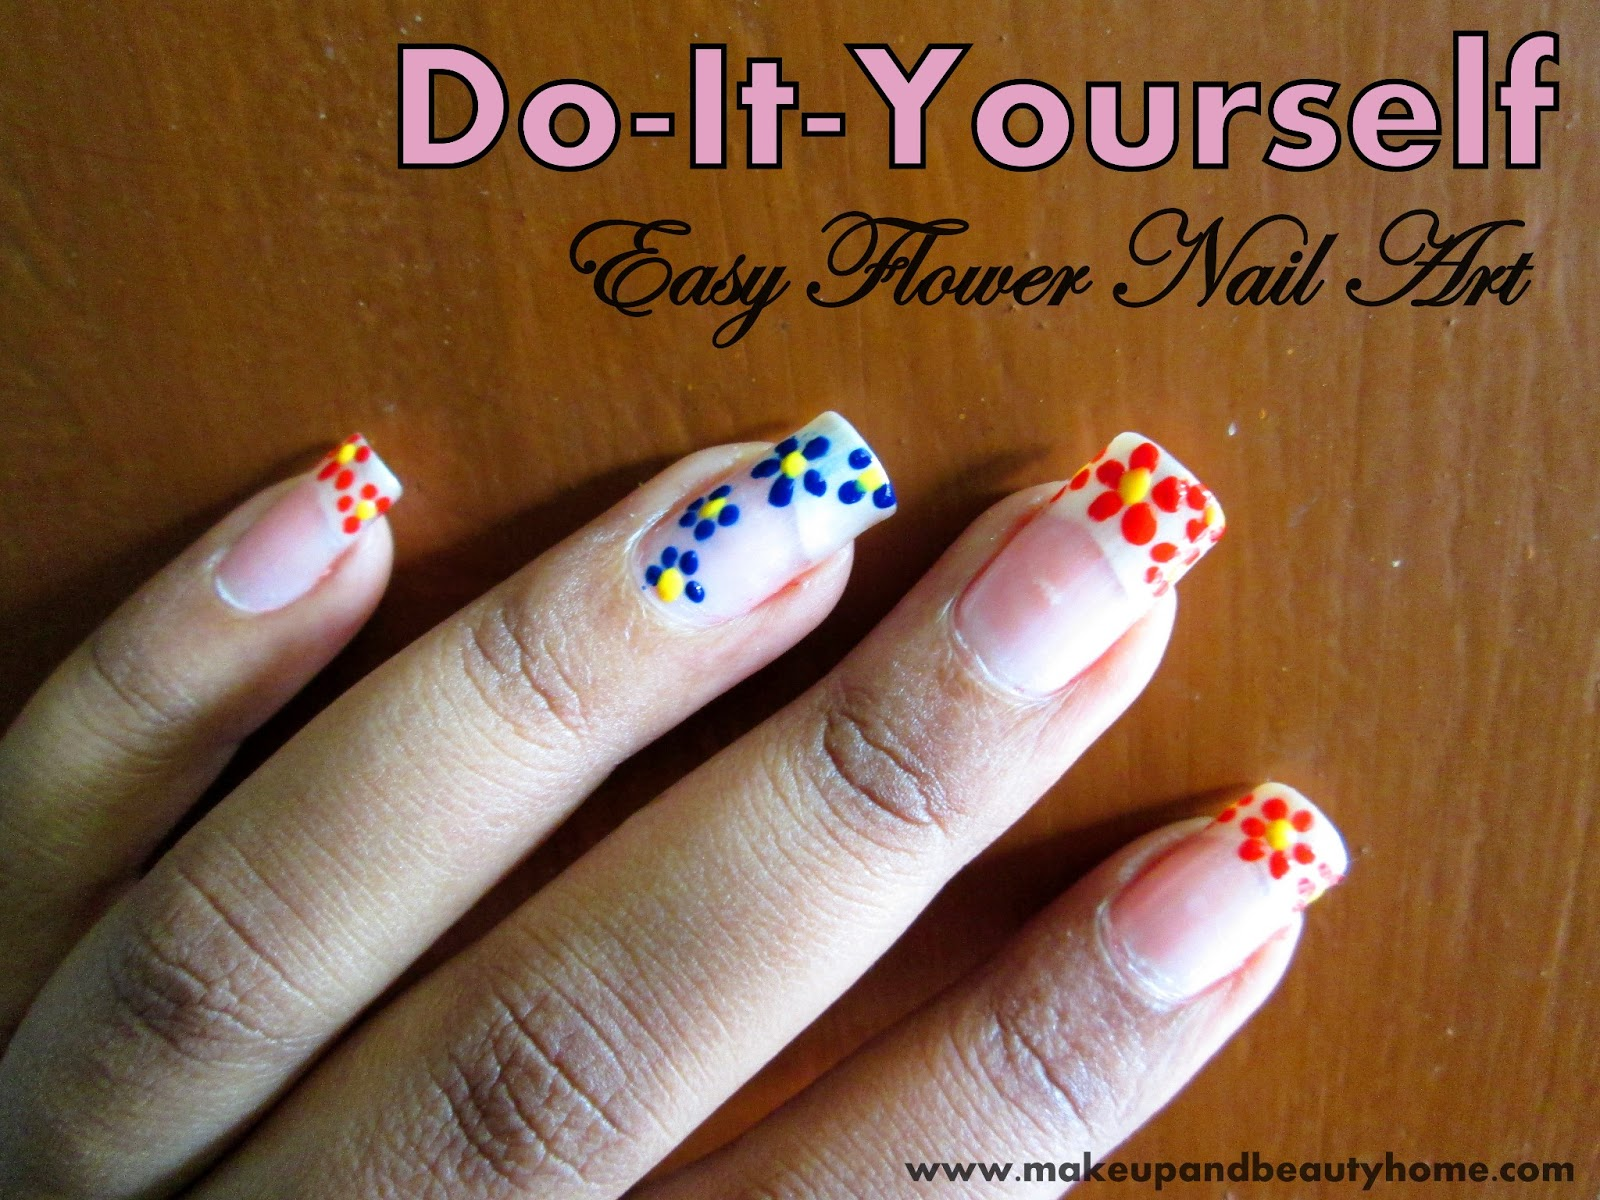 Do it yourself easy flower nail art 6 easy steps - Nail designs do it yourself at home ...